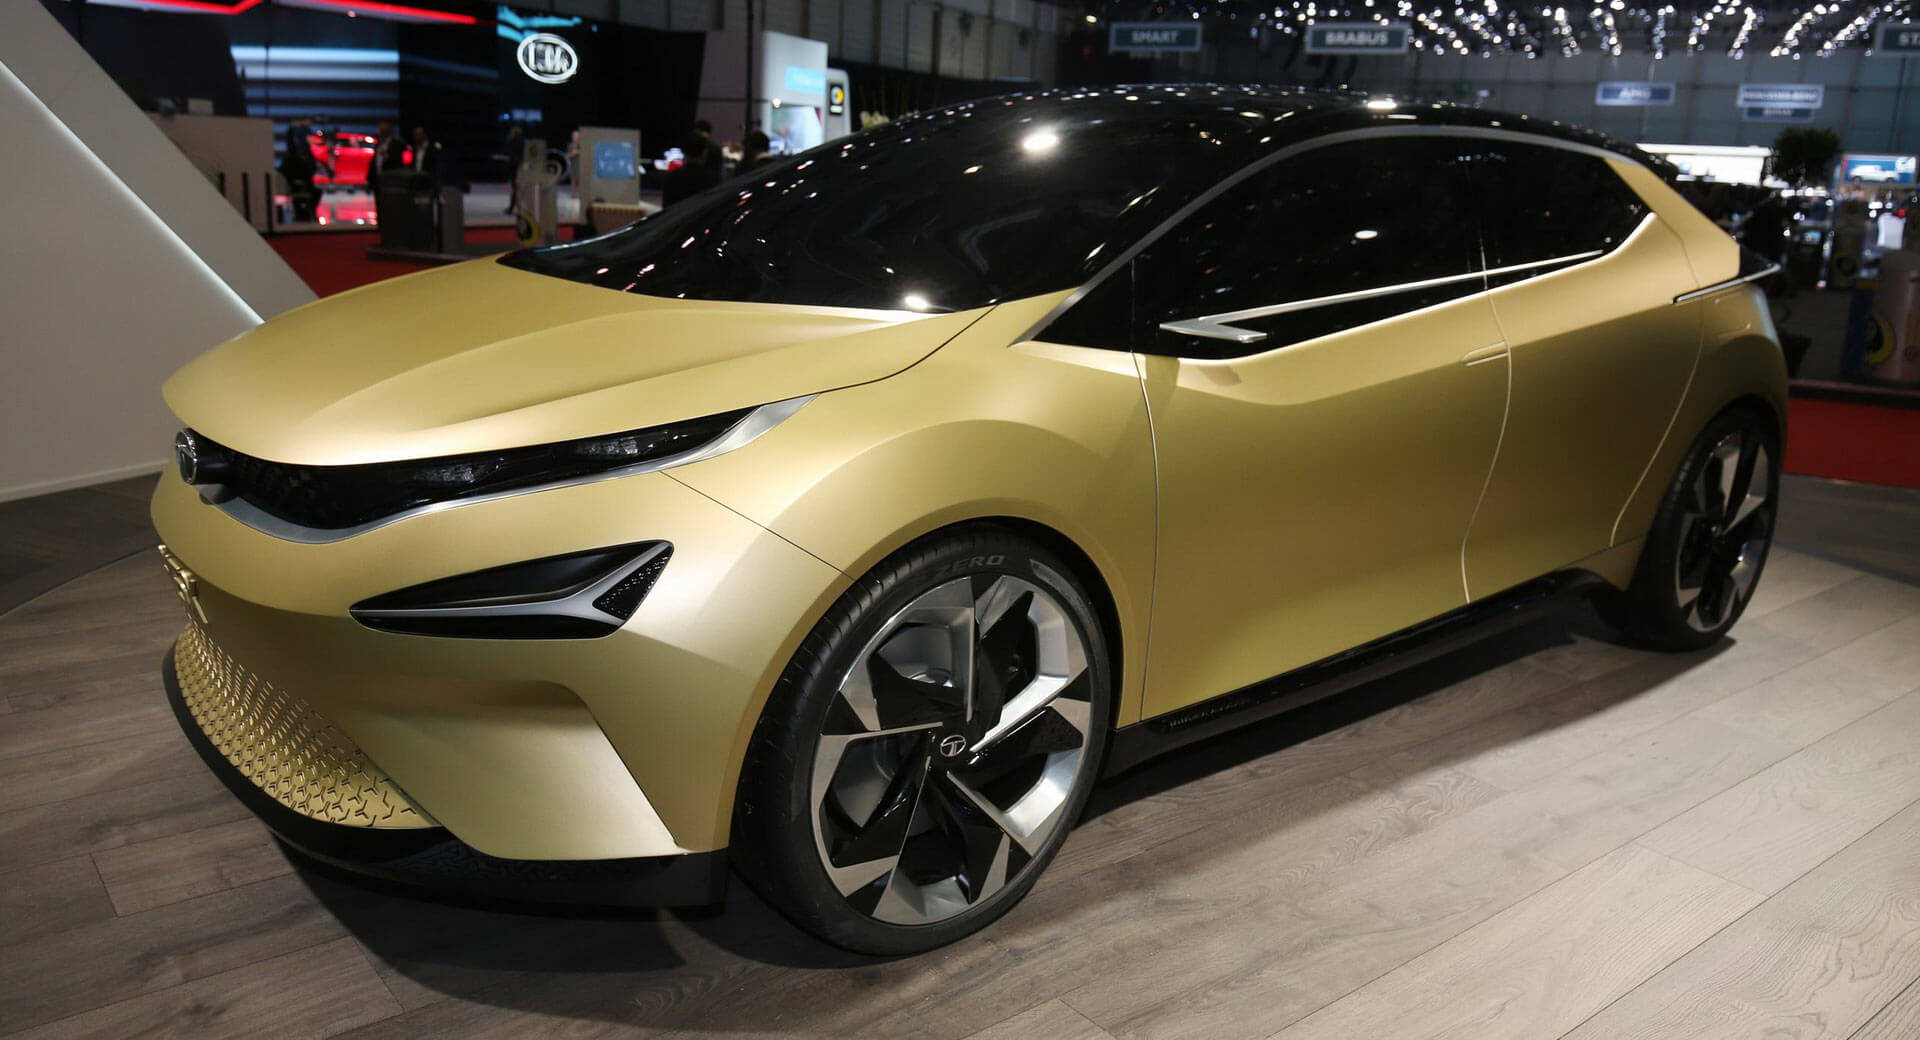 Tata 45X Concept Is A Surprisingly Good Looking Compact